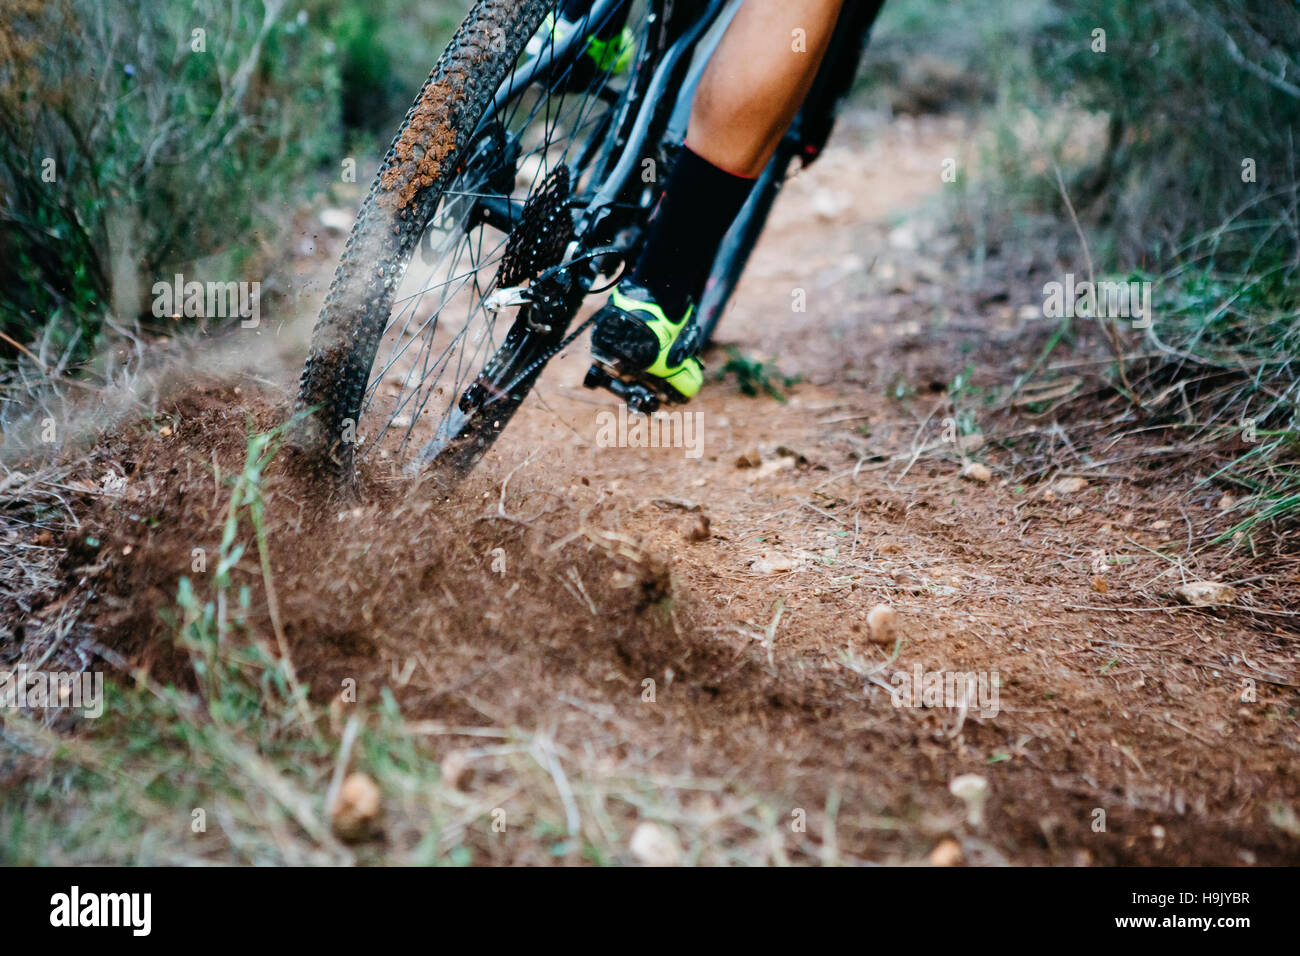 Close-up di mountainbiker sbandata in una curva Immagini Stock